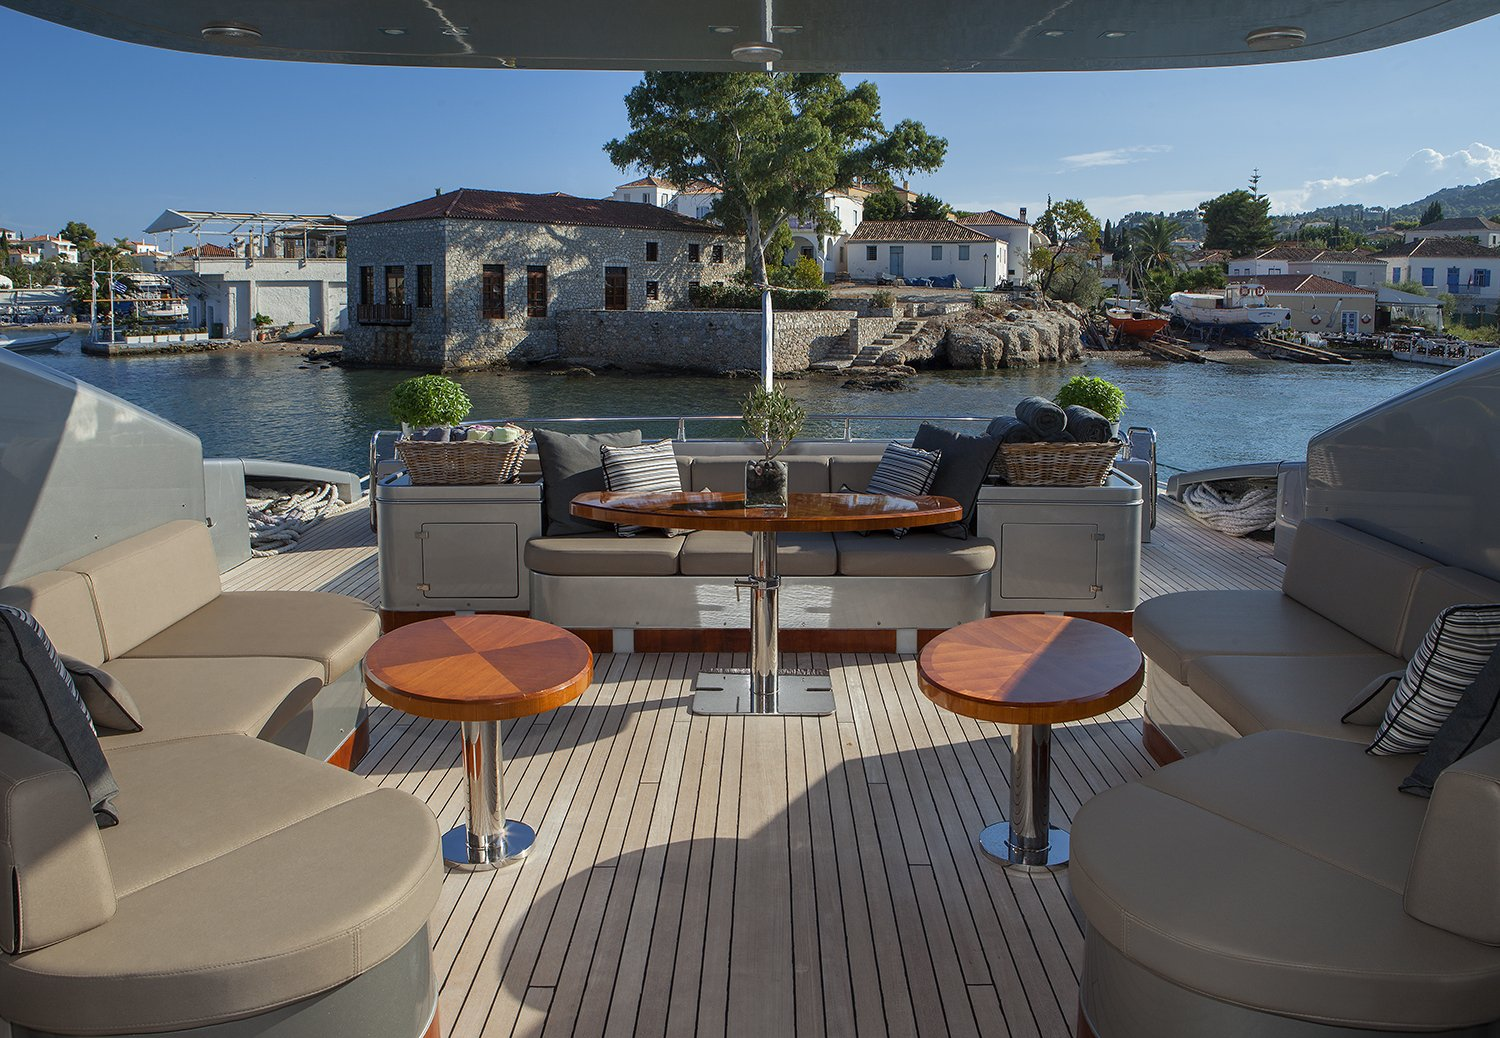 M/Y MY TOY yacht for charter deck space